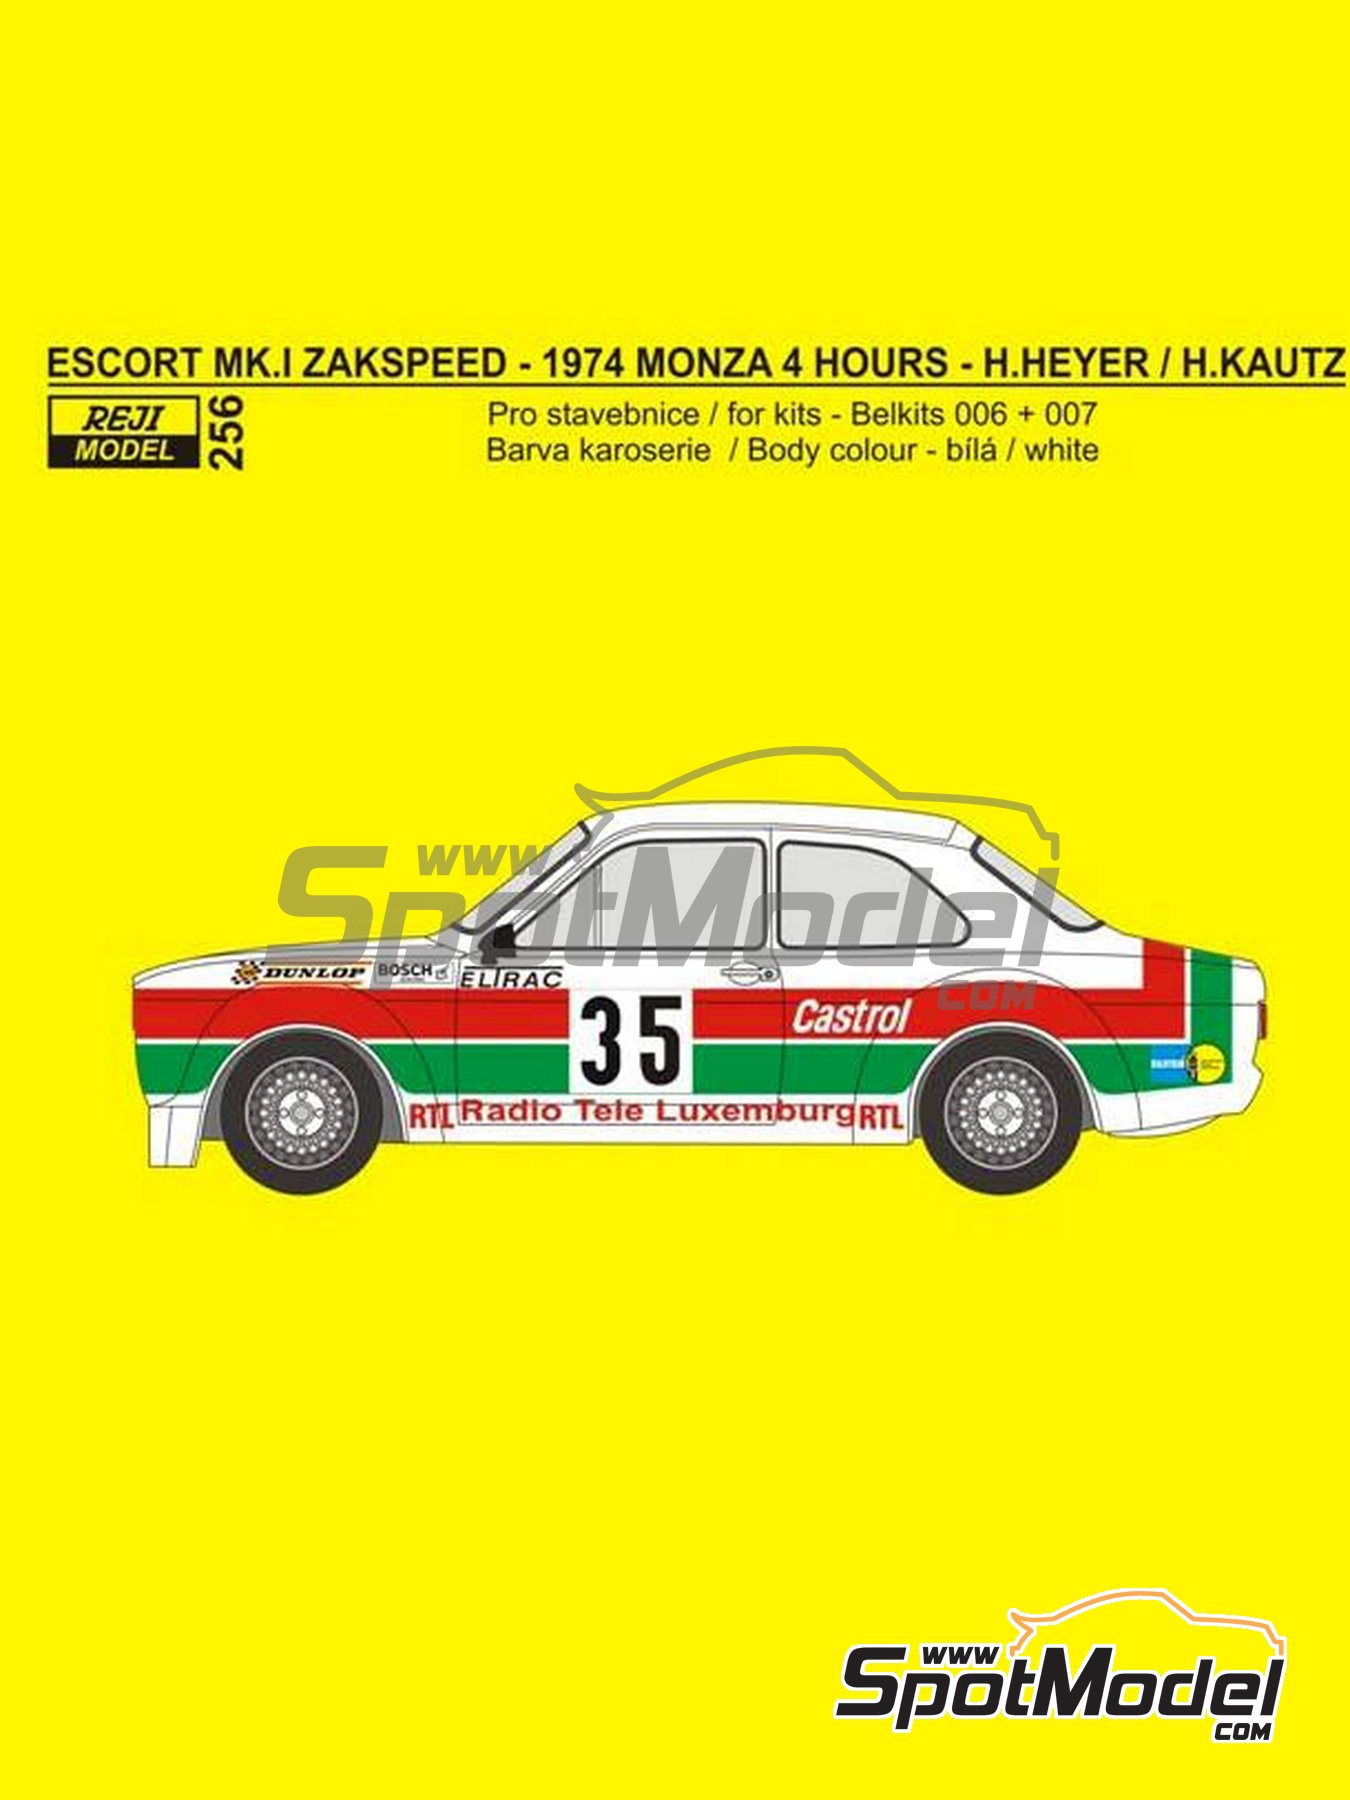 Ford Escort Mk. I Zakspeed RTL - 4 Hours Monza 1974 | Marking / livery in 1/24 scale manufactured by Reji Model (ref. REJI-256) image